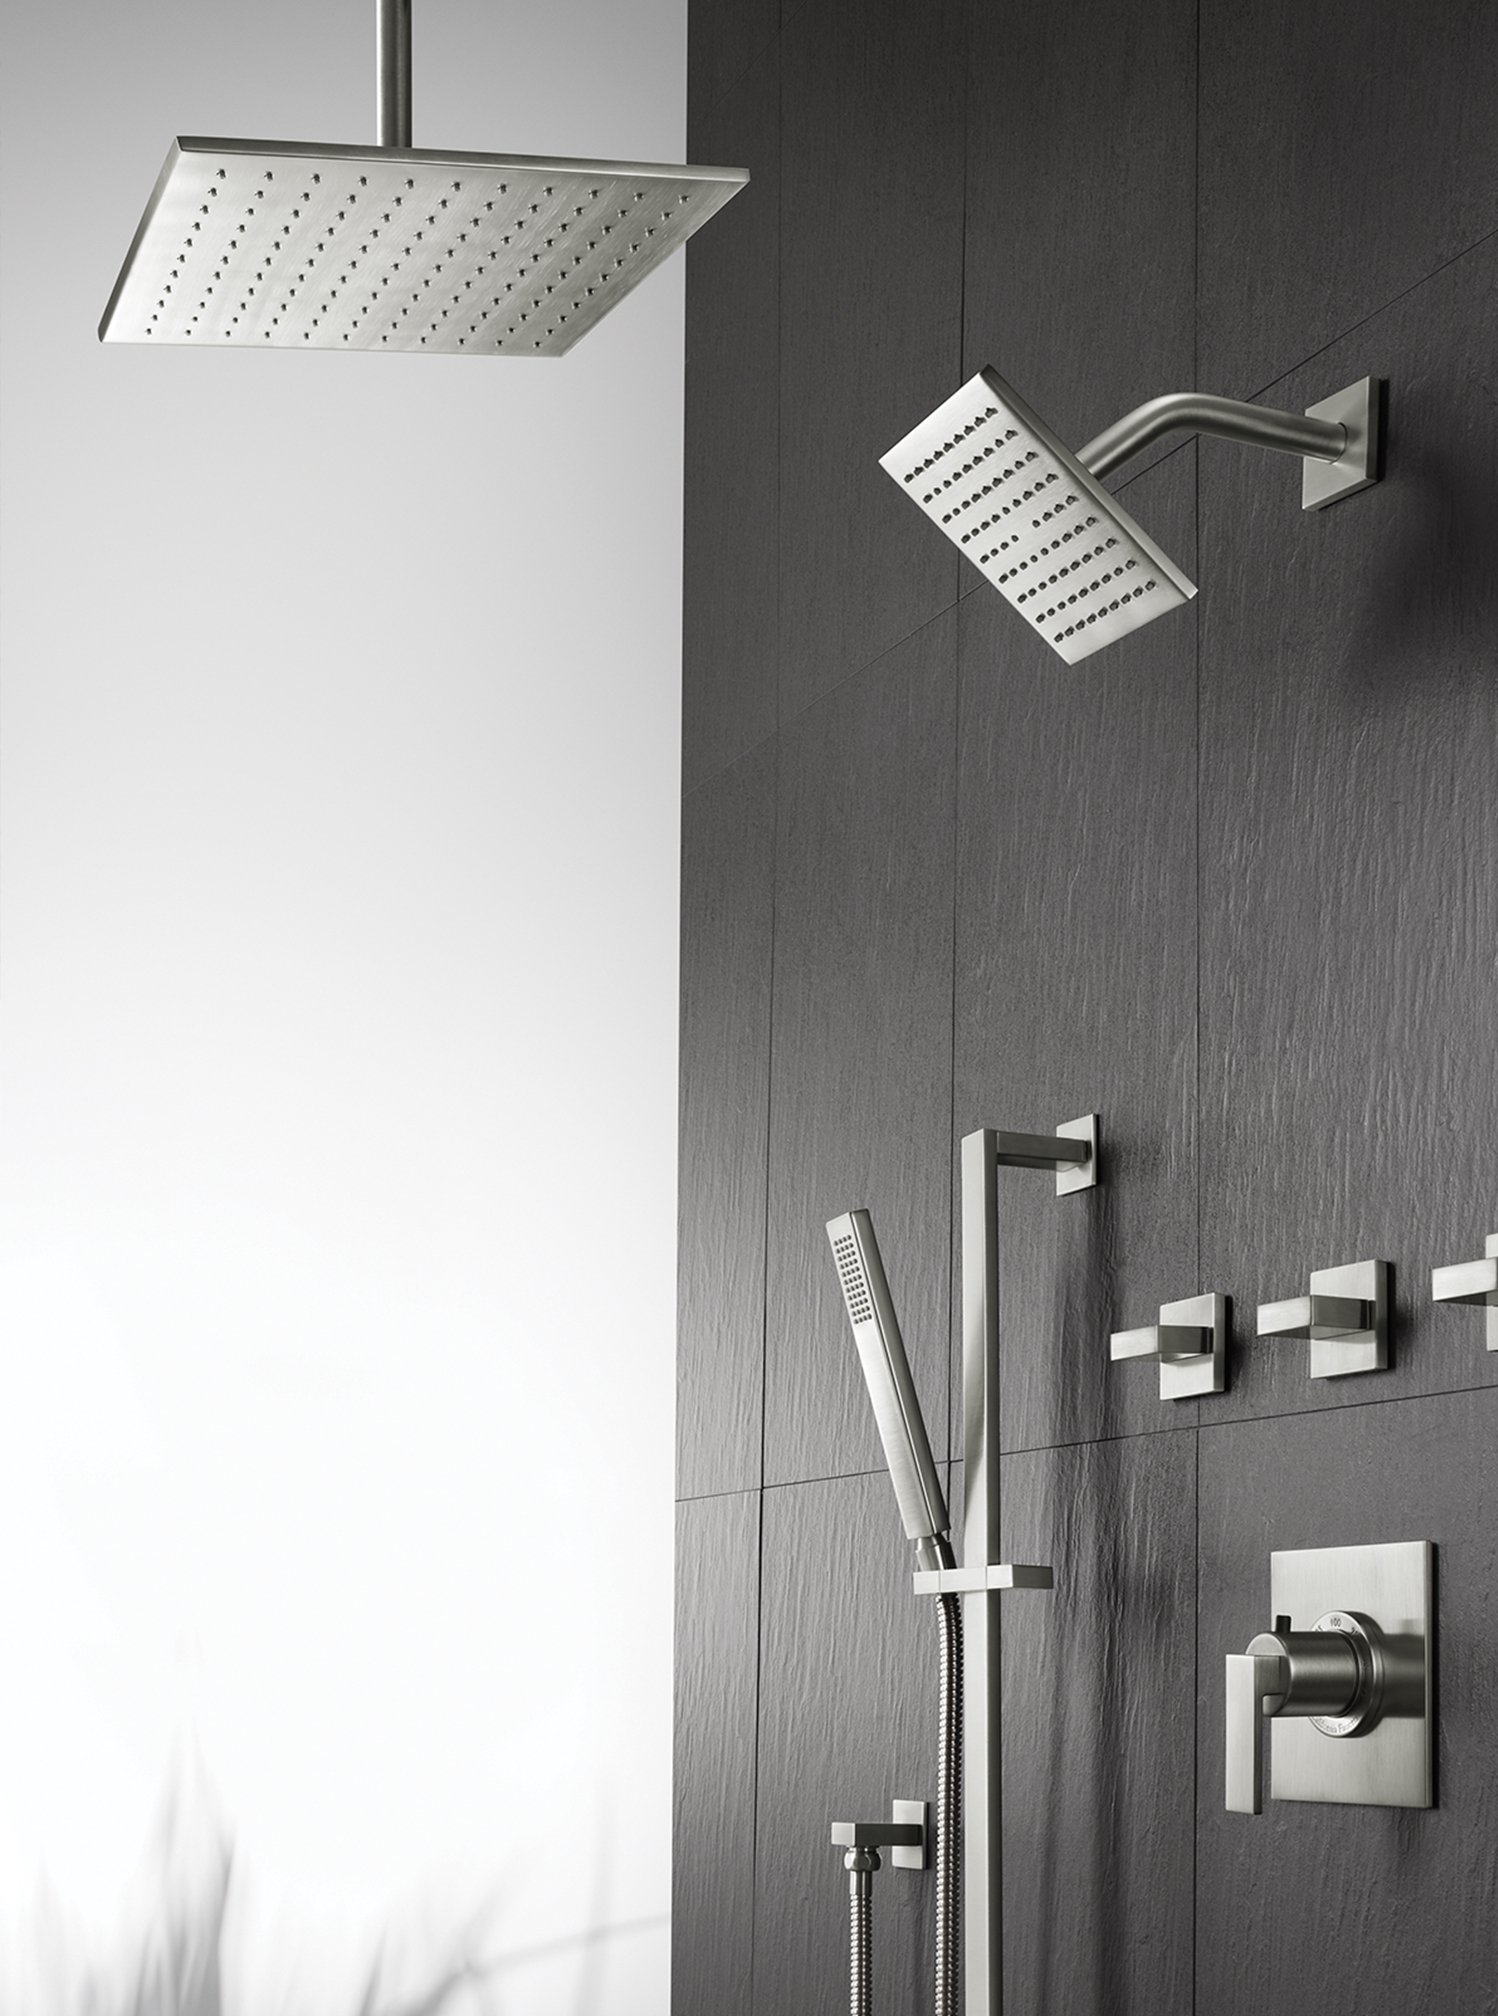 California Faucets, manufacturer of bath and kitchen fittings, launched a line of ultra-thin showerheads.